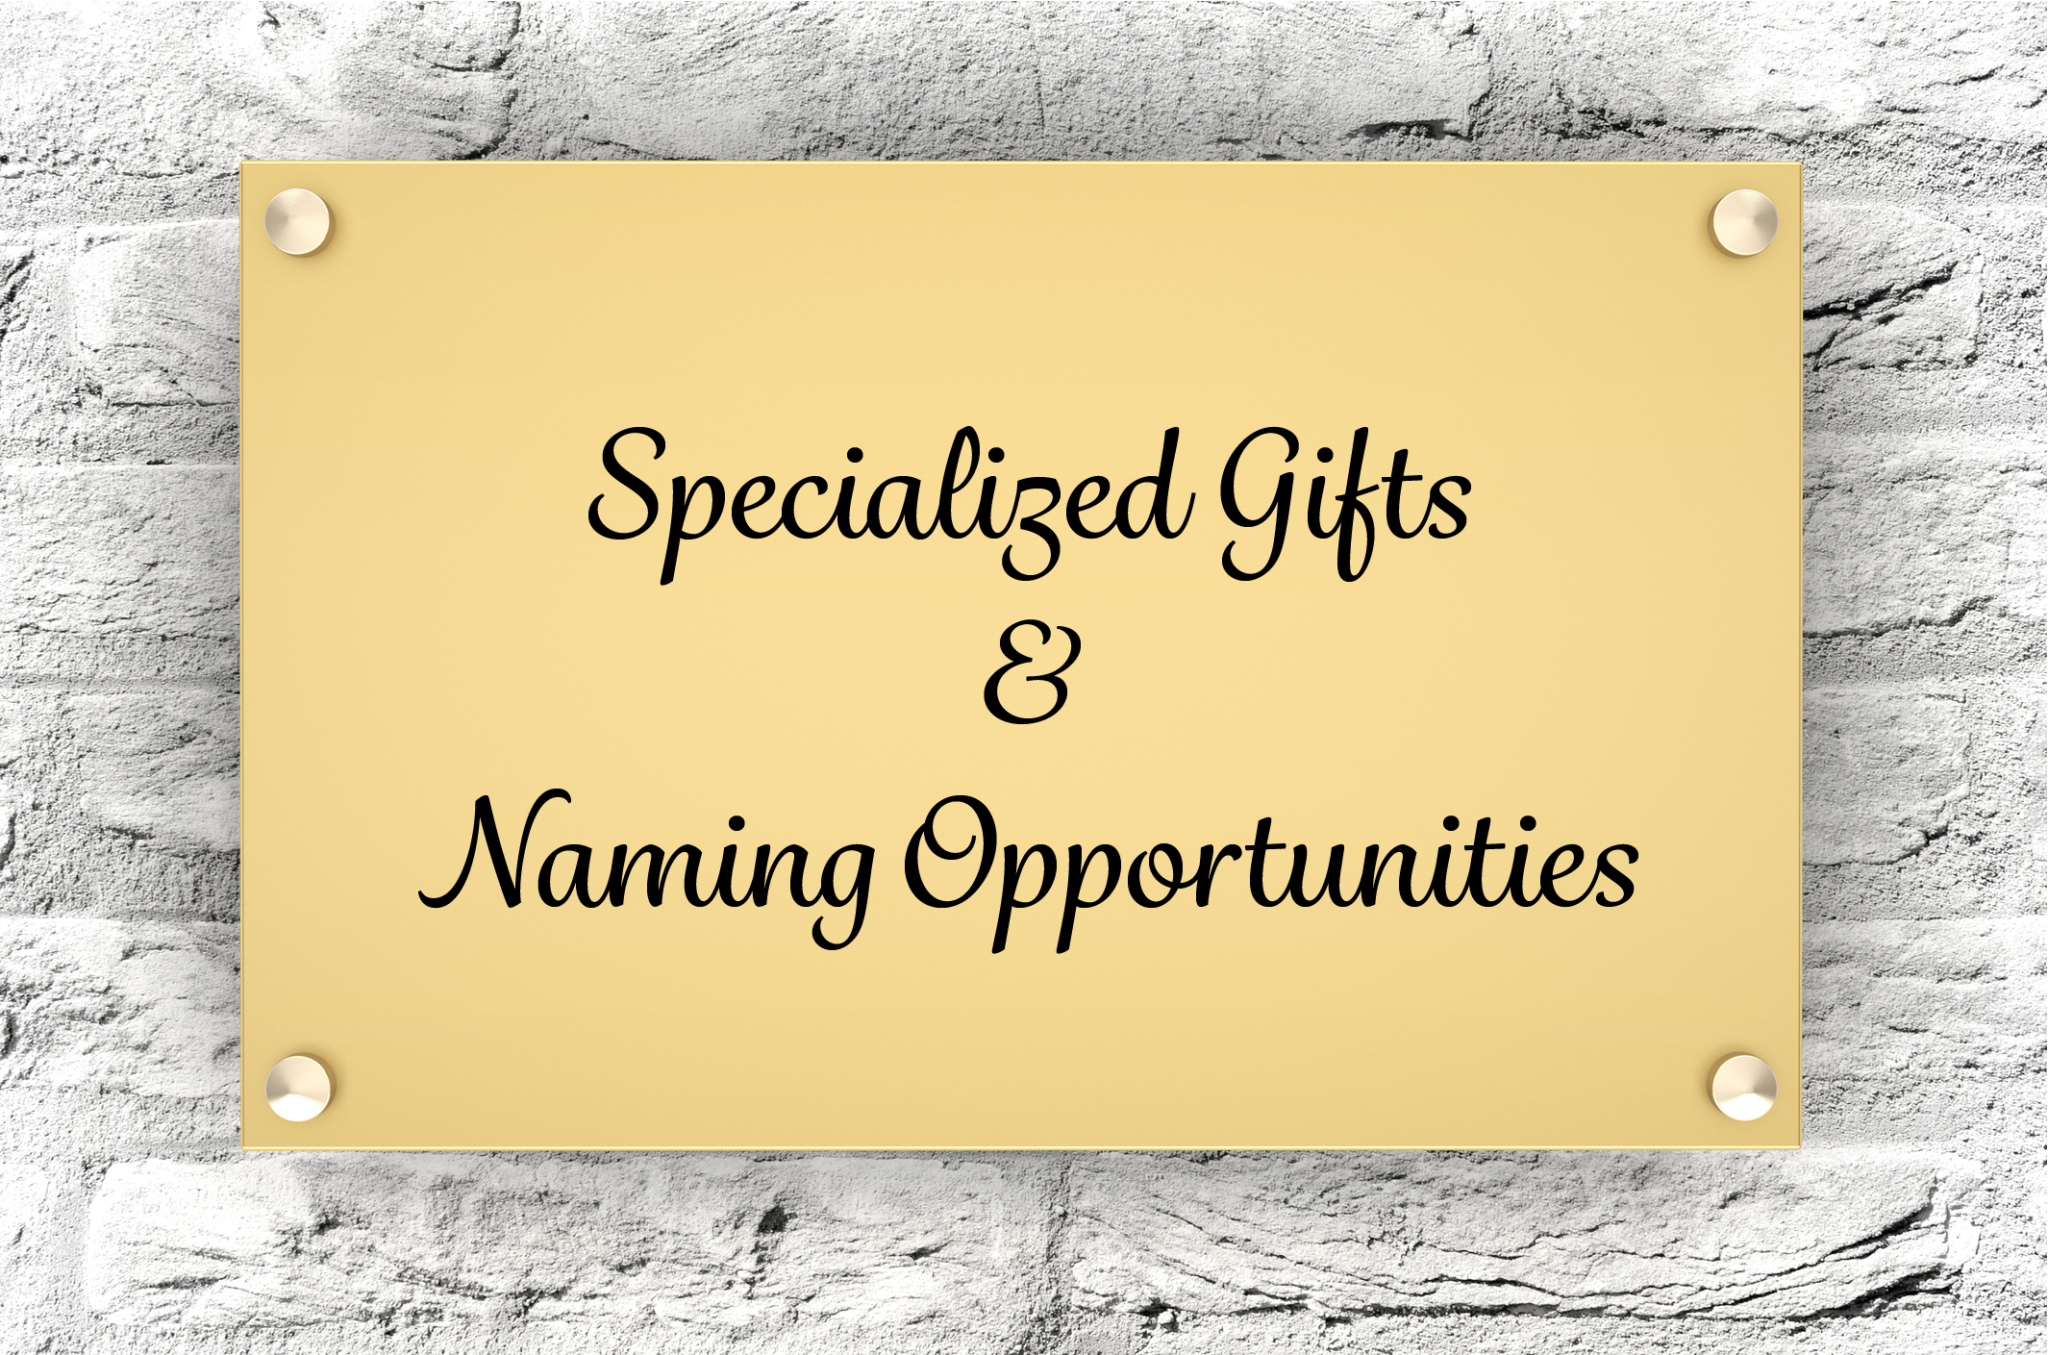 Gold Plaque On Stone Wall With Text